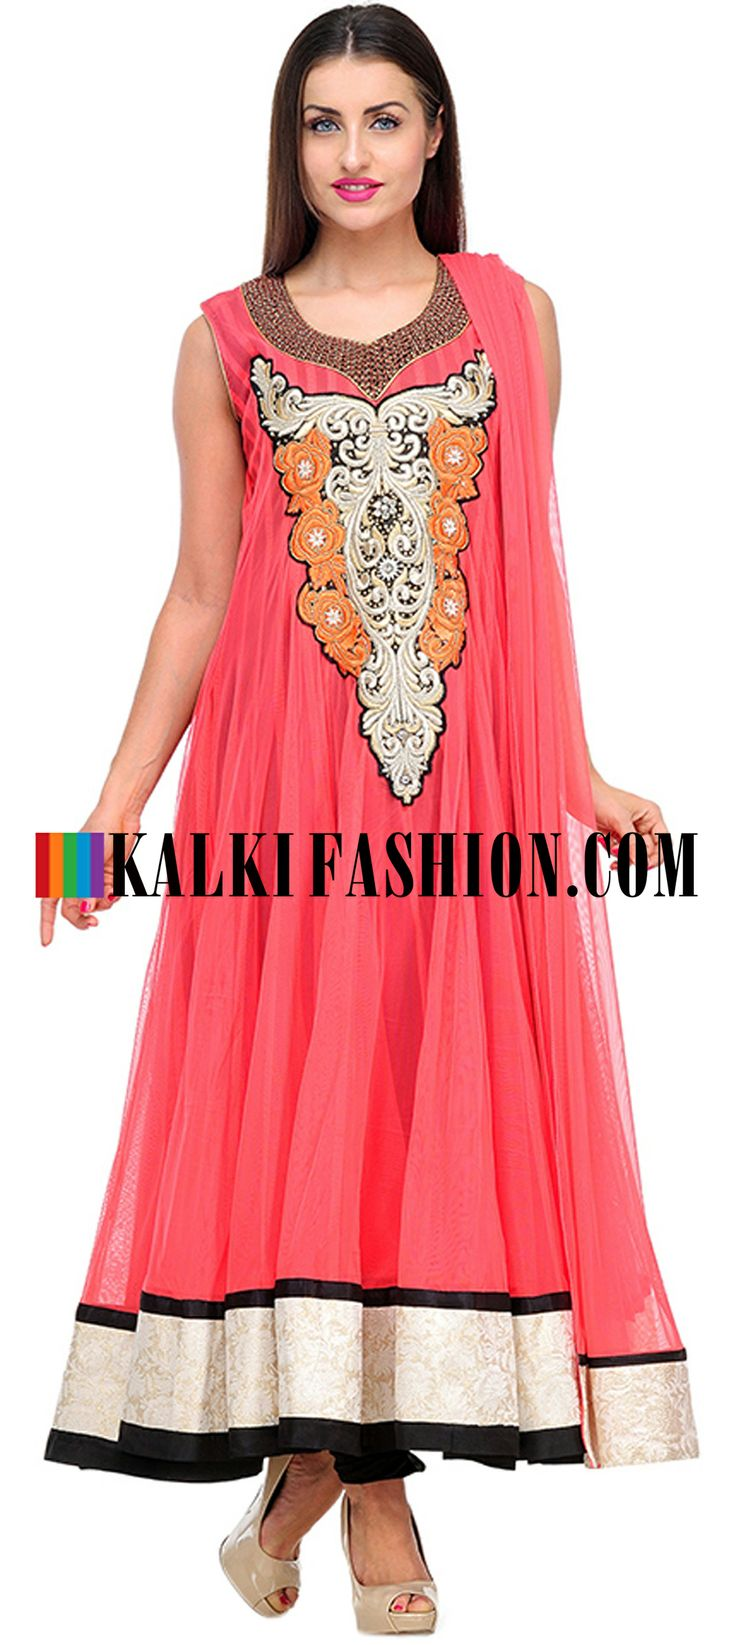 Buy Online from the link below. We ship worldwide (Free Shipping over US$100)  http://www.kalkifashion.com/peach-net-embroidered-anarkali-suit.html